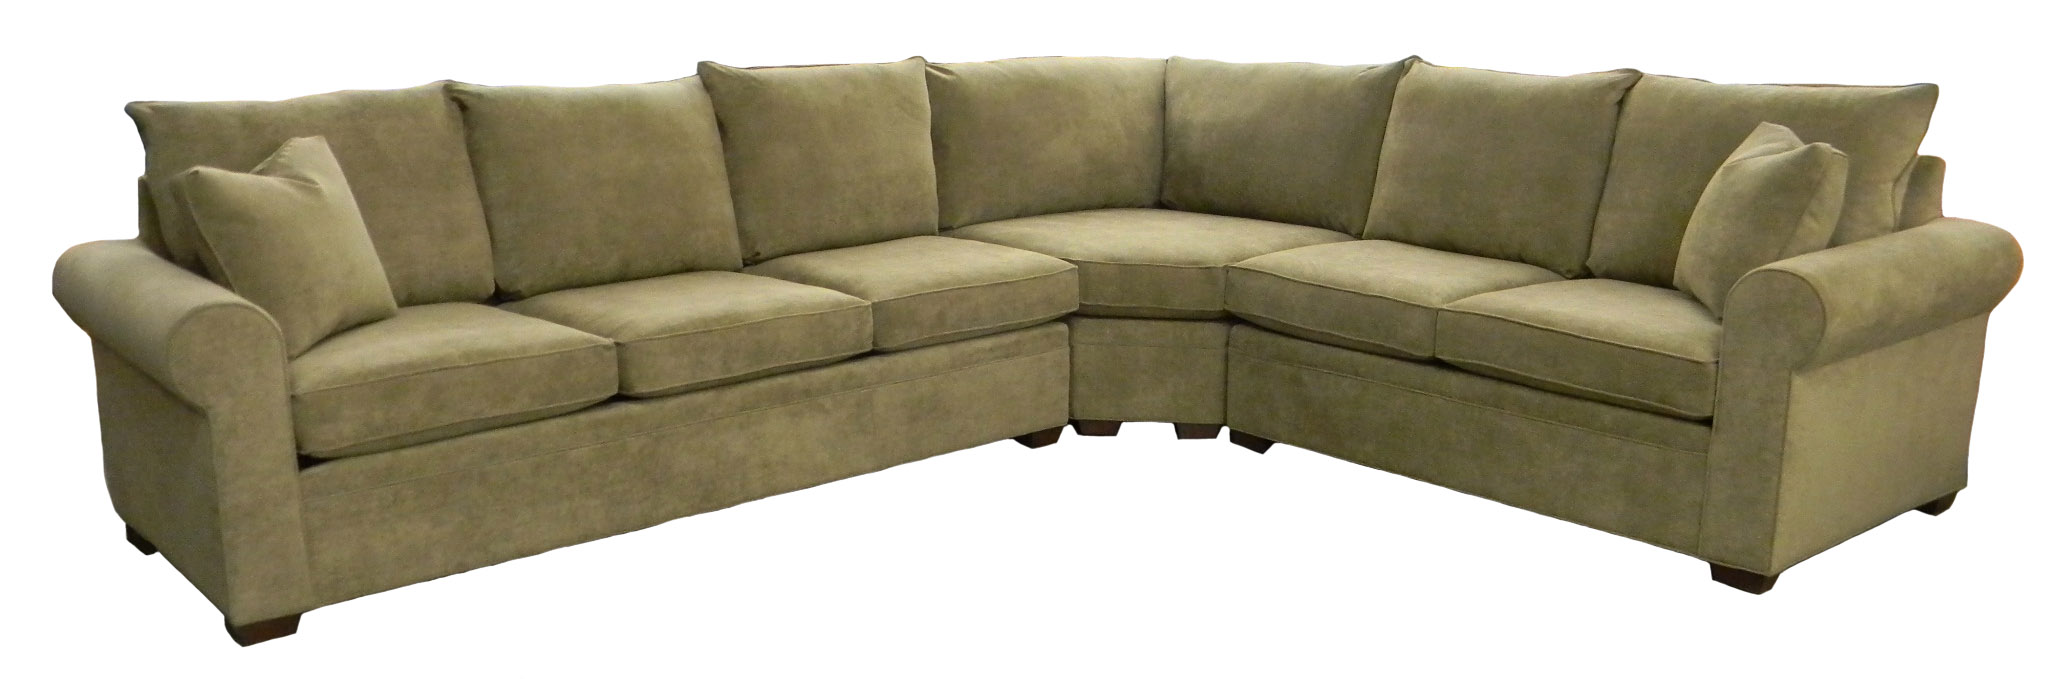 Photos Examples Custom Sectional Sofas Carolina Chair Furniture ~ How To Measure A Sectional Sofa With Wedge